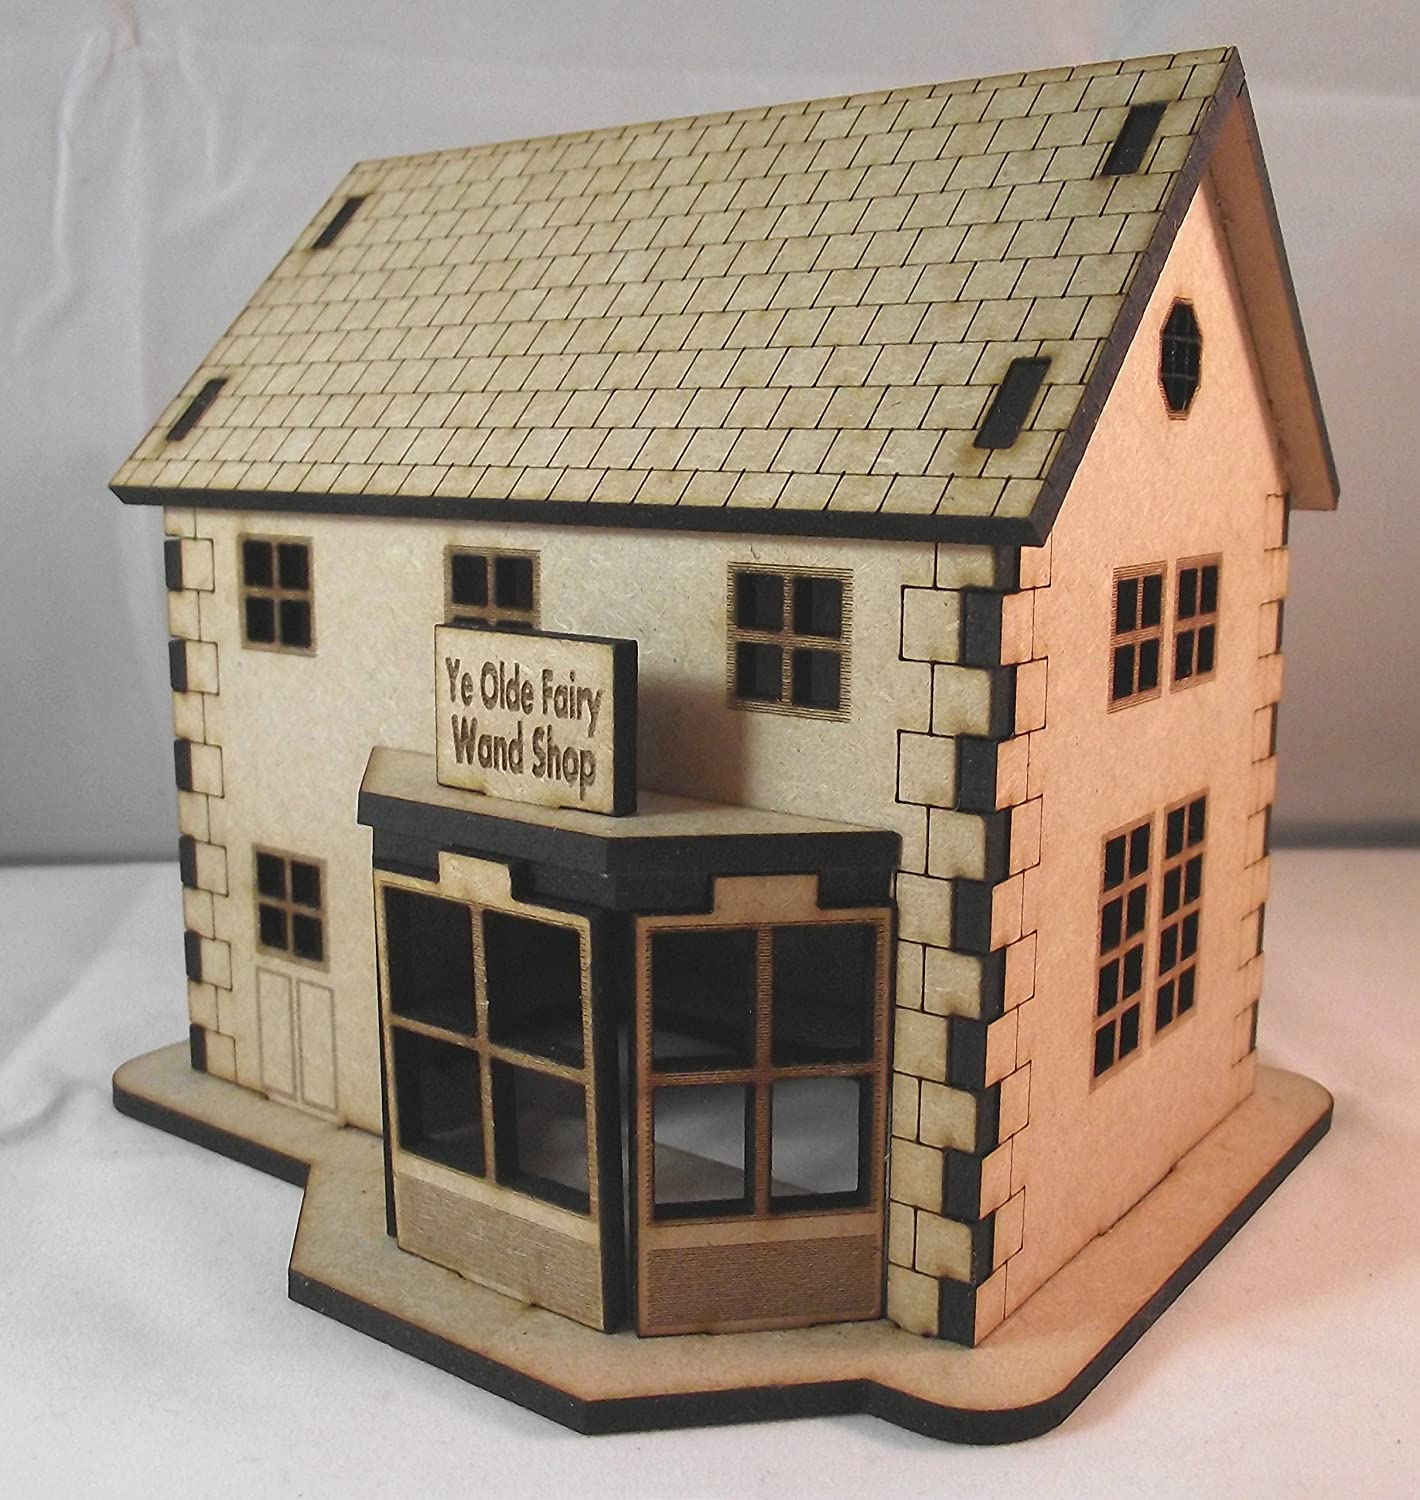 Build Your Own Fairy Village in Miniature - Ye Olde Fairy Wand Shop - Wooden Fairy House/Dolls House Kit Secret Fairy Door